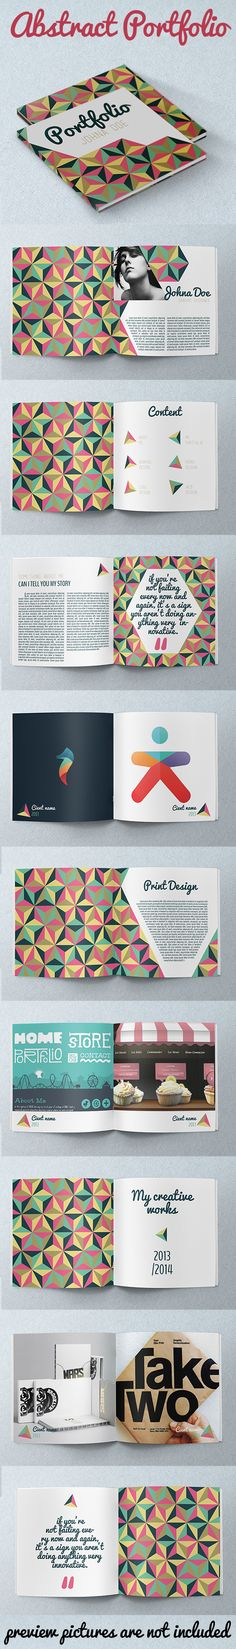 15 Beautiful Print Ready Business Brochure Designs – András Halák 15 Beautiful Print Ready Business Brochure Designs Portfolio inspiration Good: design and page layout, colour choices, and inspirational quotes To Be Better: no triangles, different font Portfolio Design, Book Portfolio, Portfolio Layout, Personal Portfolio, Web Design, Book Design, Layout Design, Print Design, Cv Inspiration